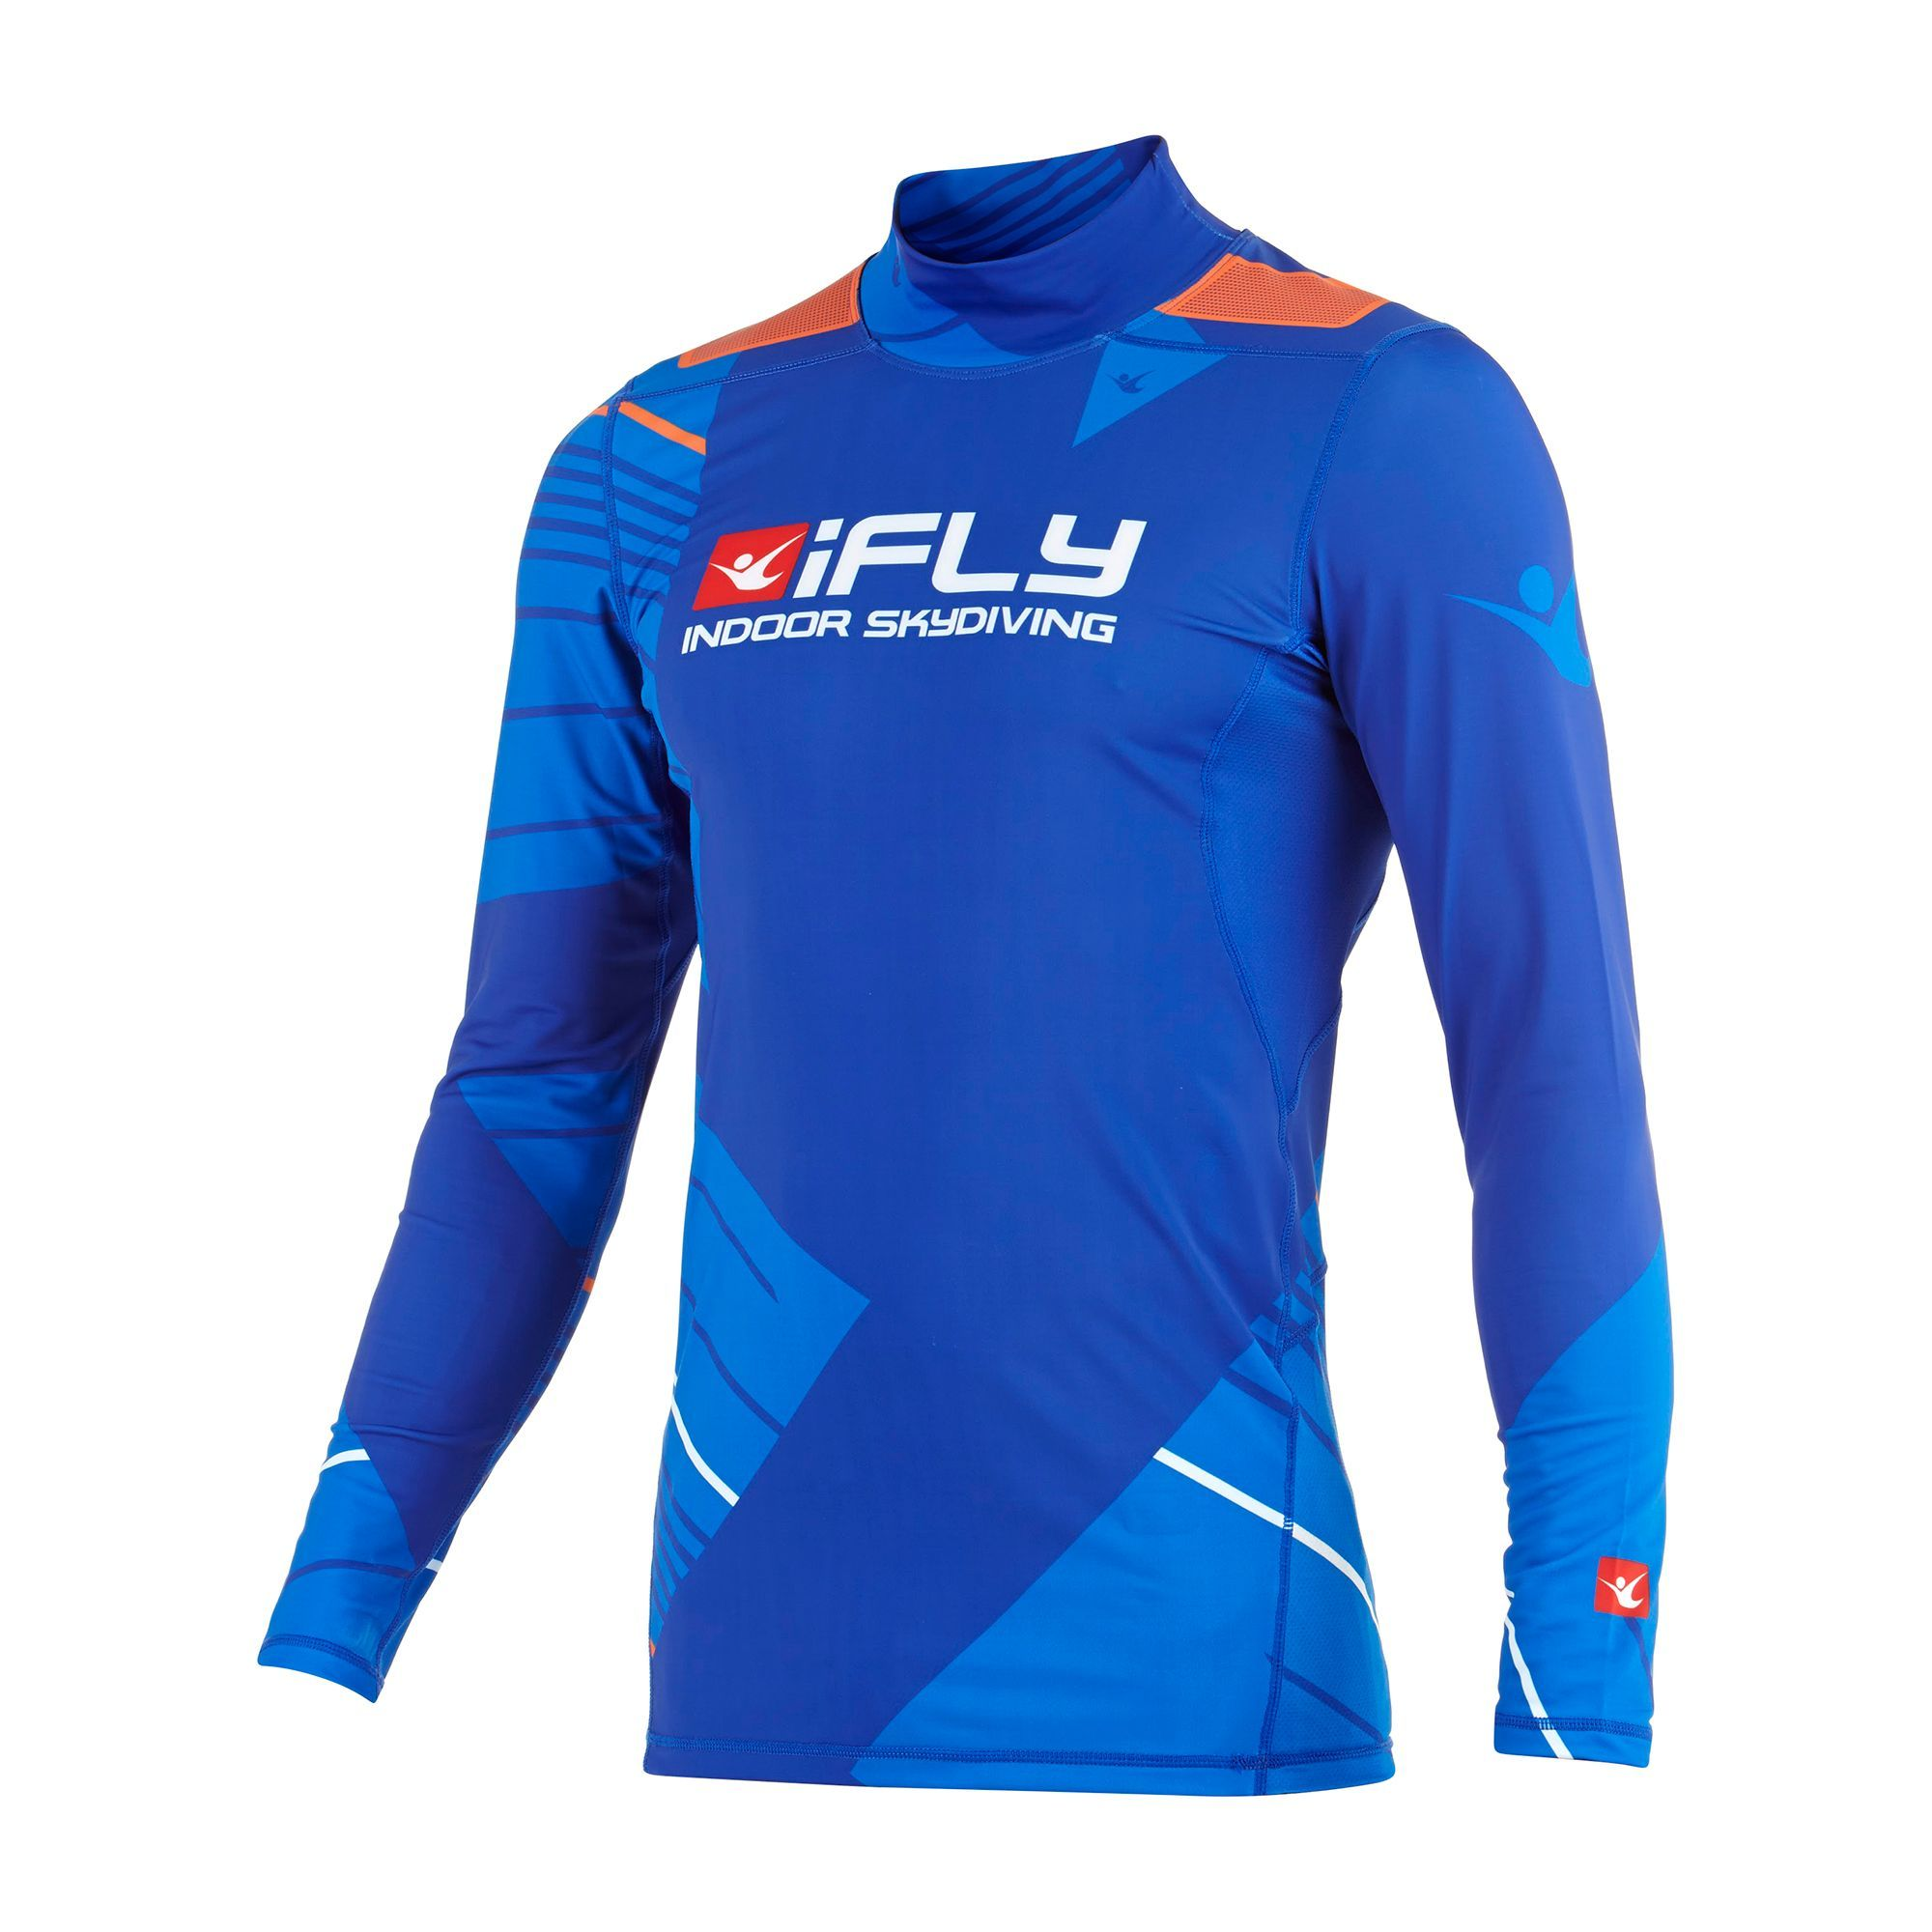 Infinite Skydiving Jersey in Blue colorway — at